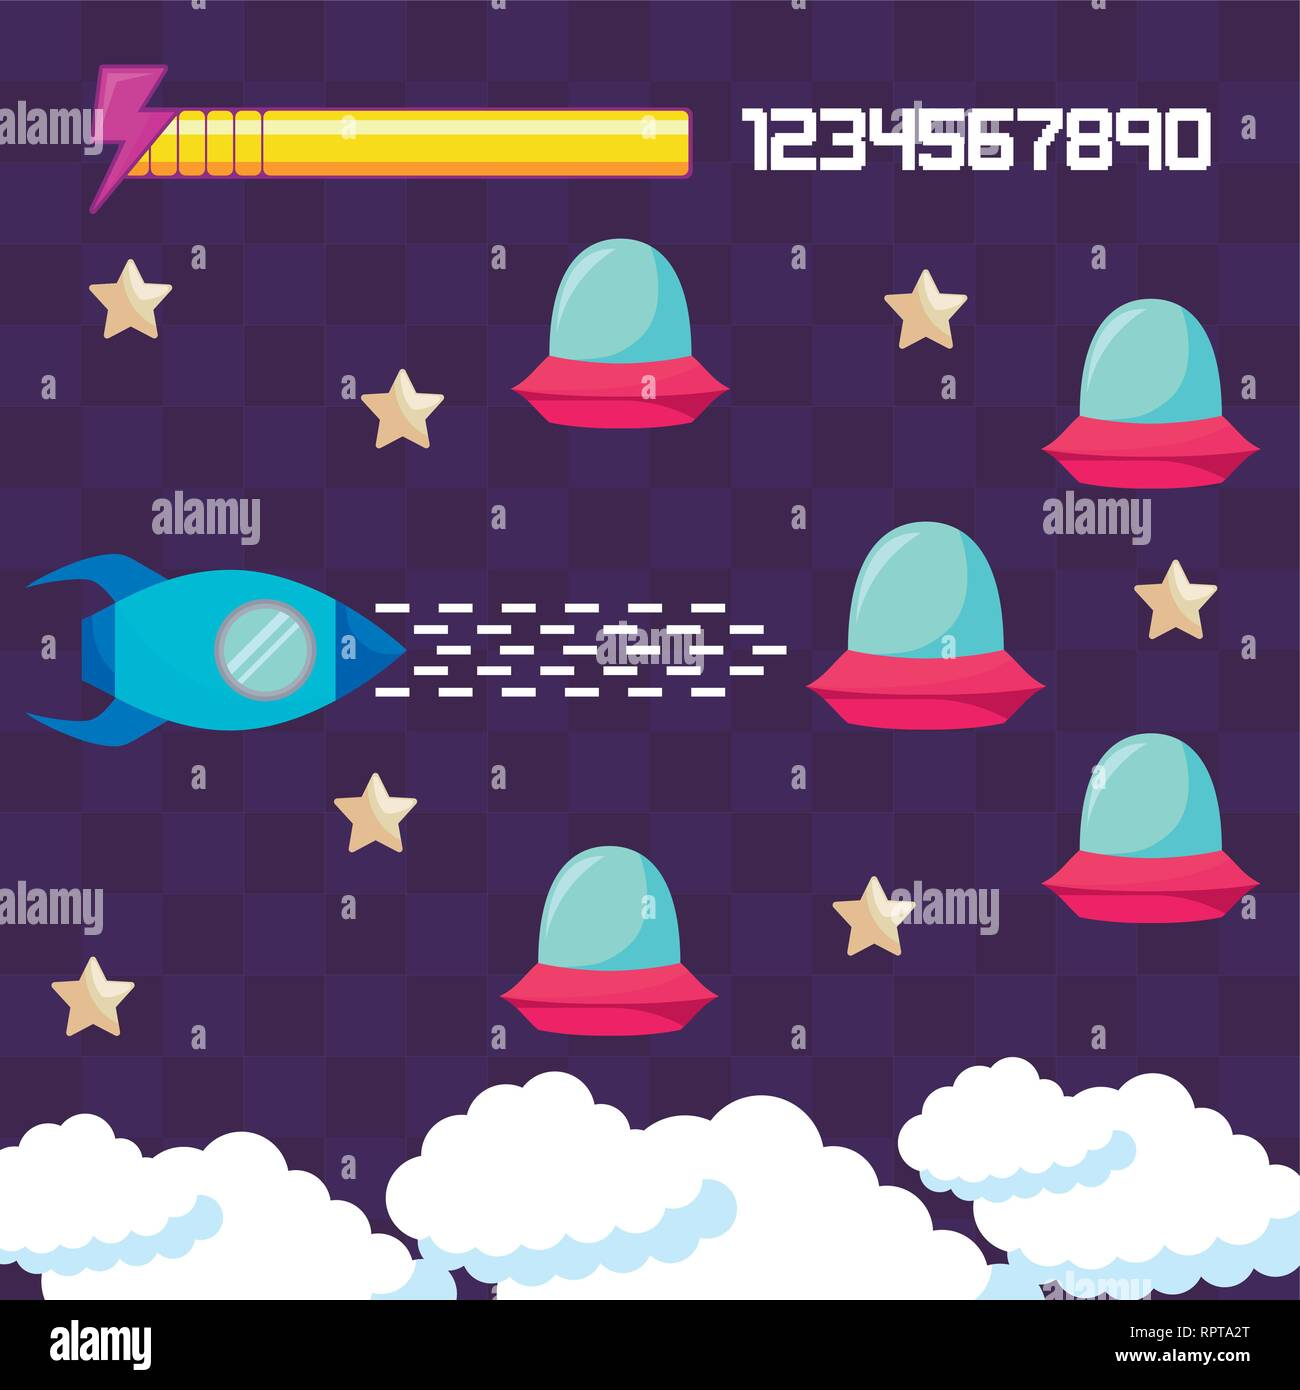 classic video game rocket flying and ufos vector illustration design - Stock Image